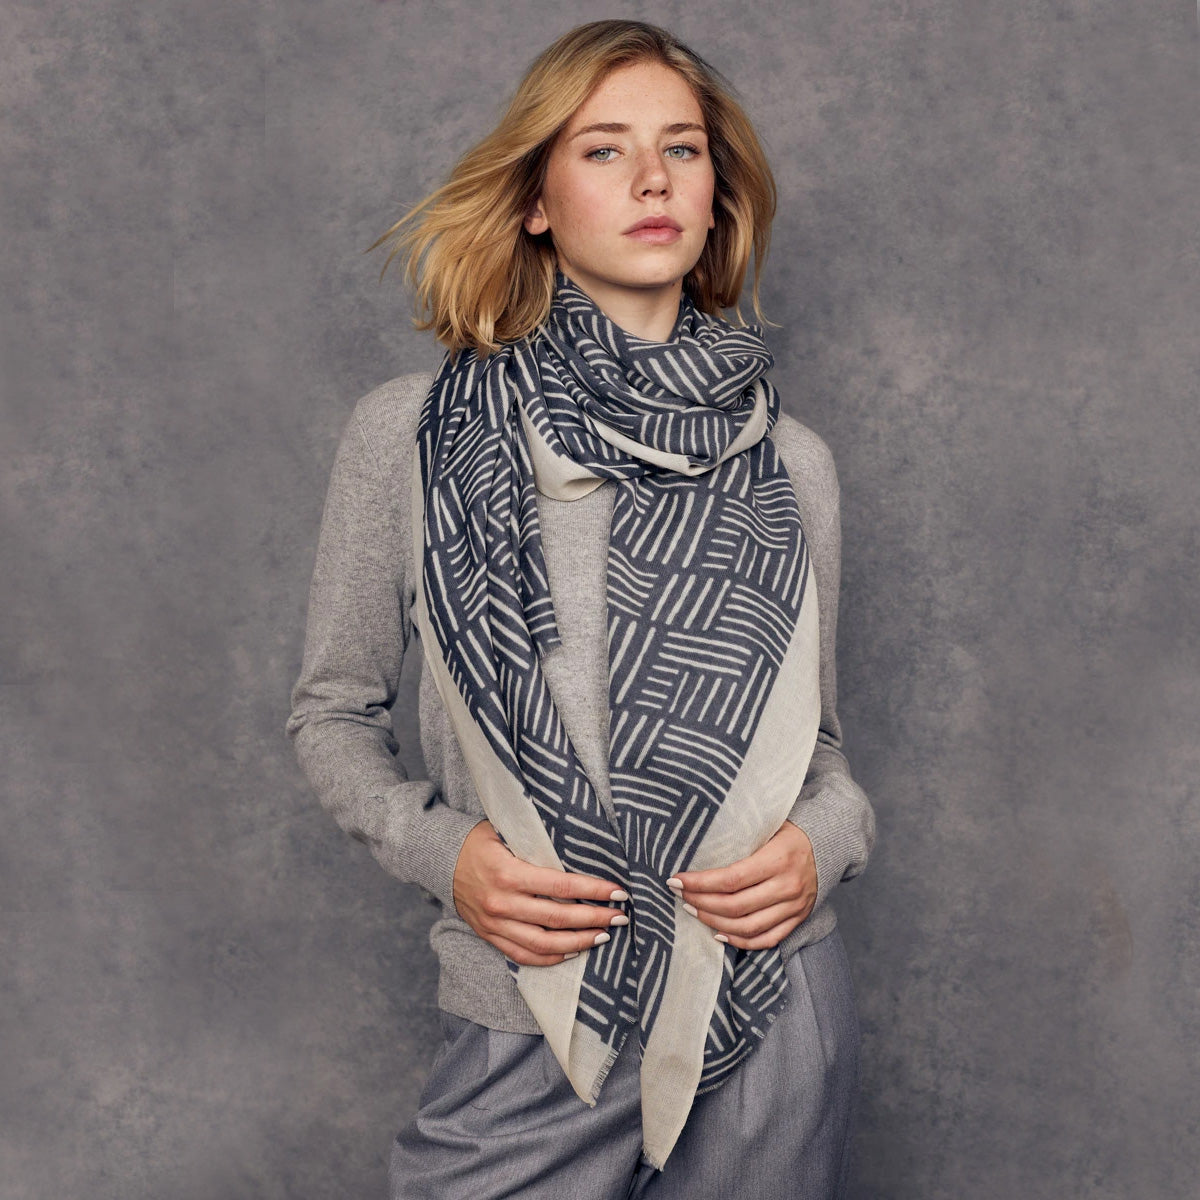 Lyon - 100% Fine Merino Wool Scarf - Grey Blue & Beige - Sold by Chic & Basta